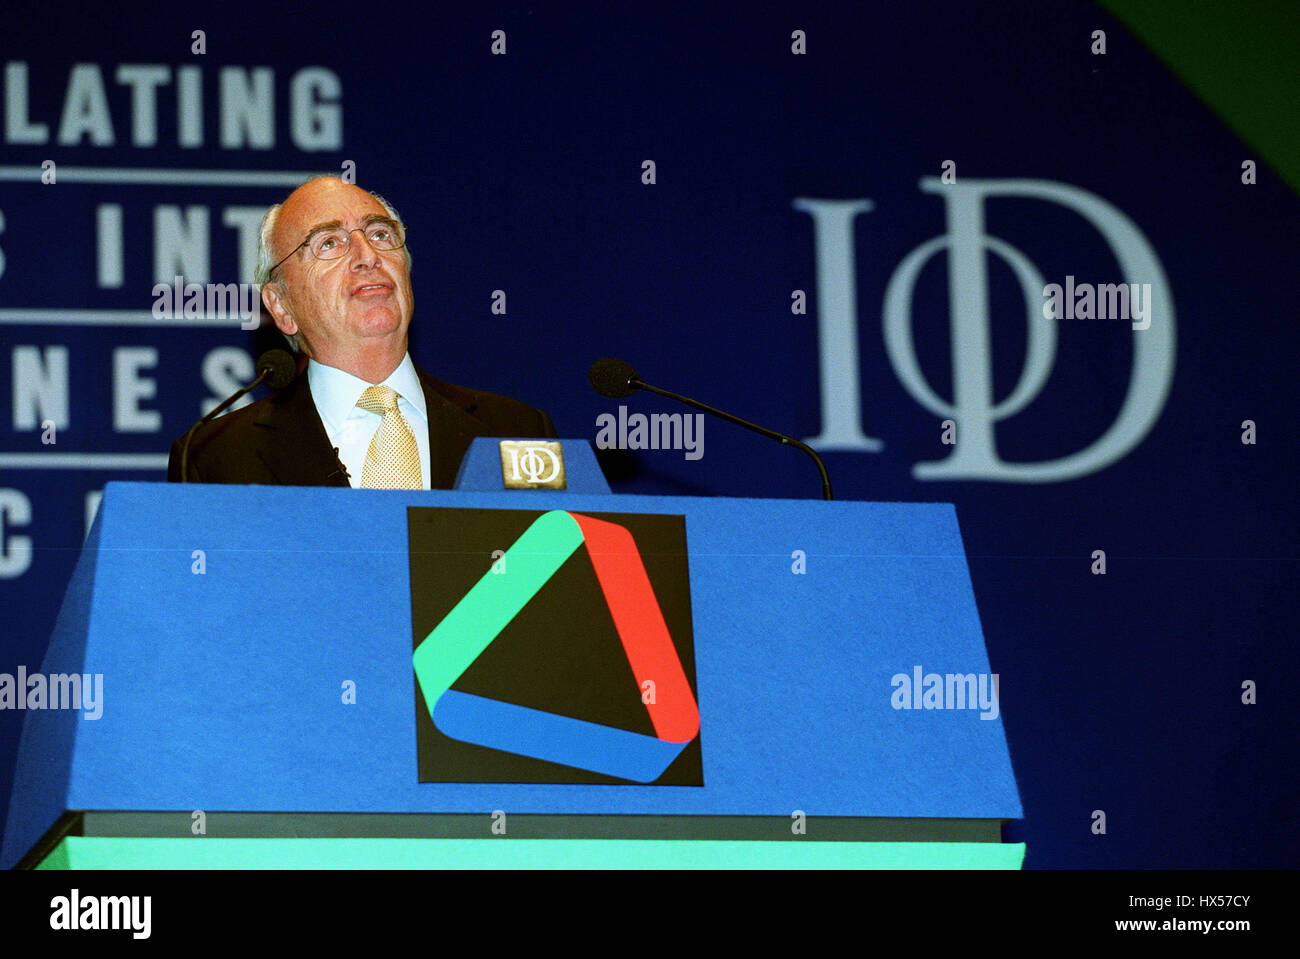 LORD YOUNG PRESIDENT INST. OF DIRECTORS 25 April 2000 - Stock Image